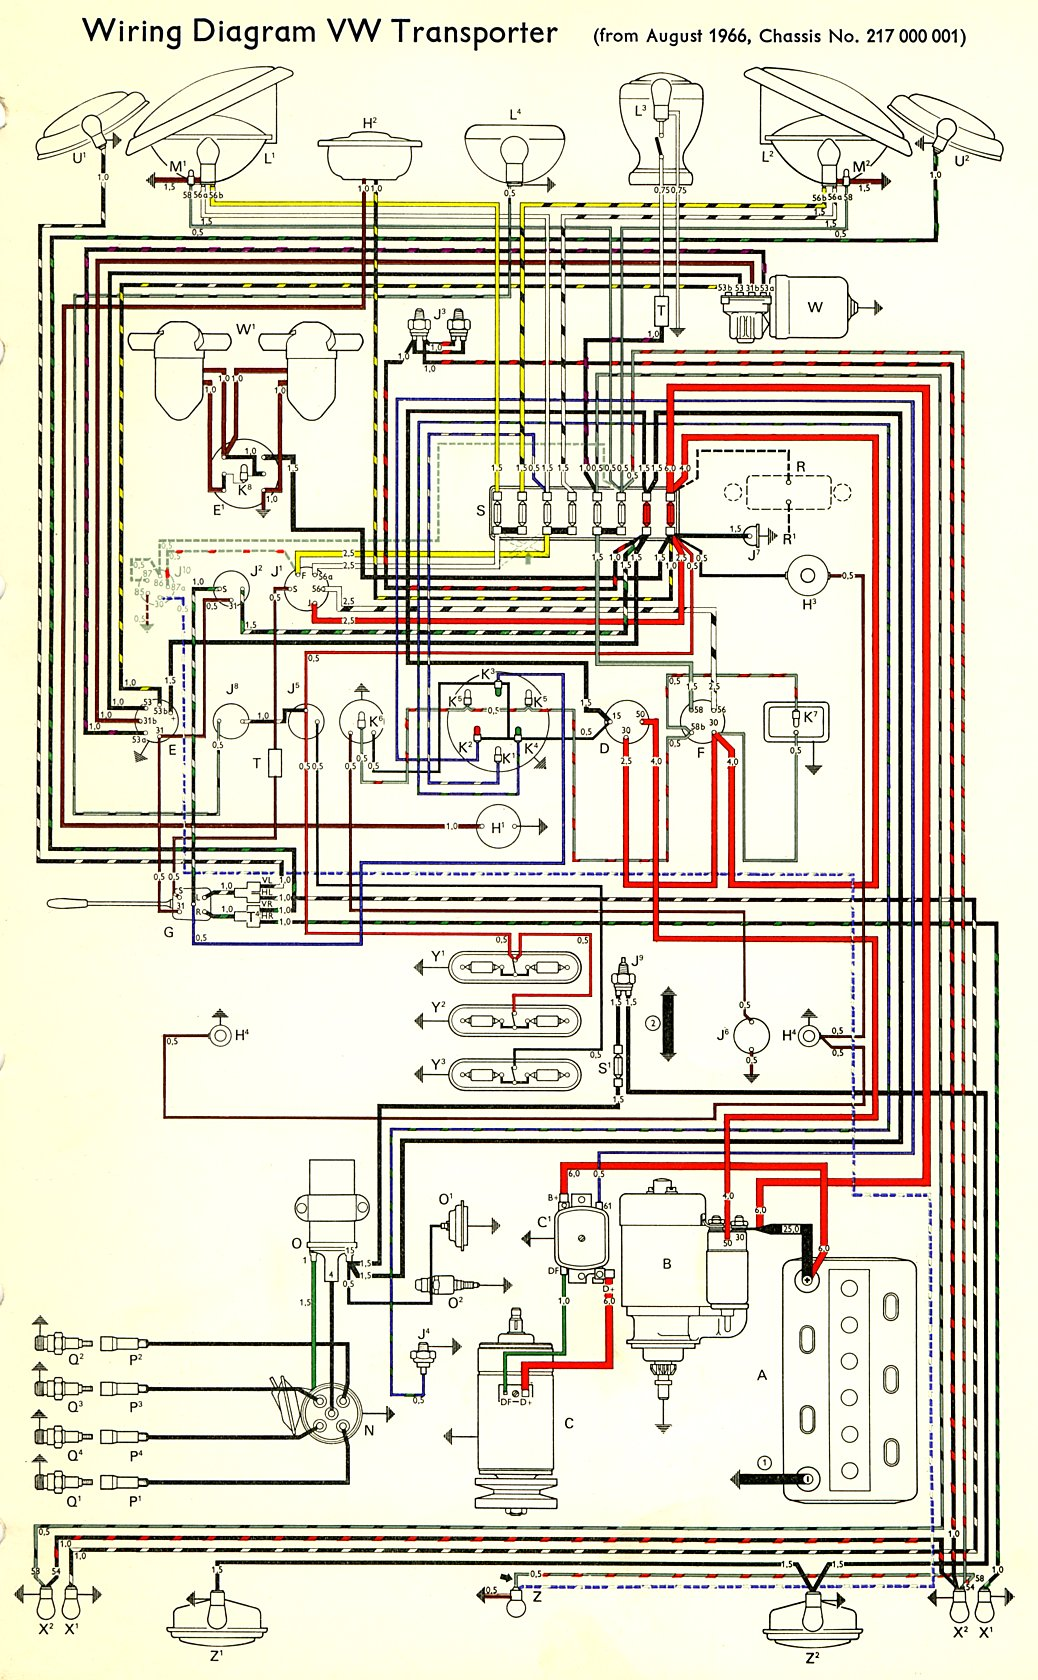 eagle bus wiring diagram 1973 1967 bus wiring diagram | thegoldenbug.com 1973 vw bus wiring diagram #4